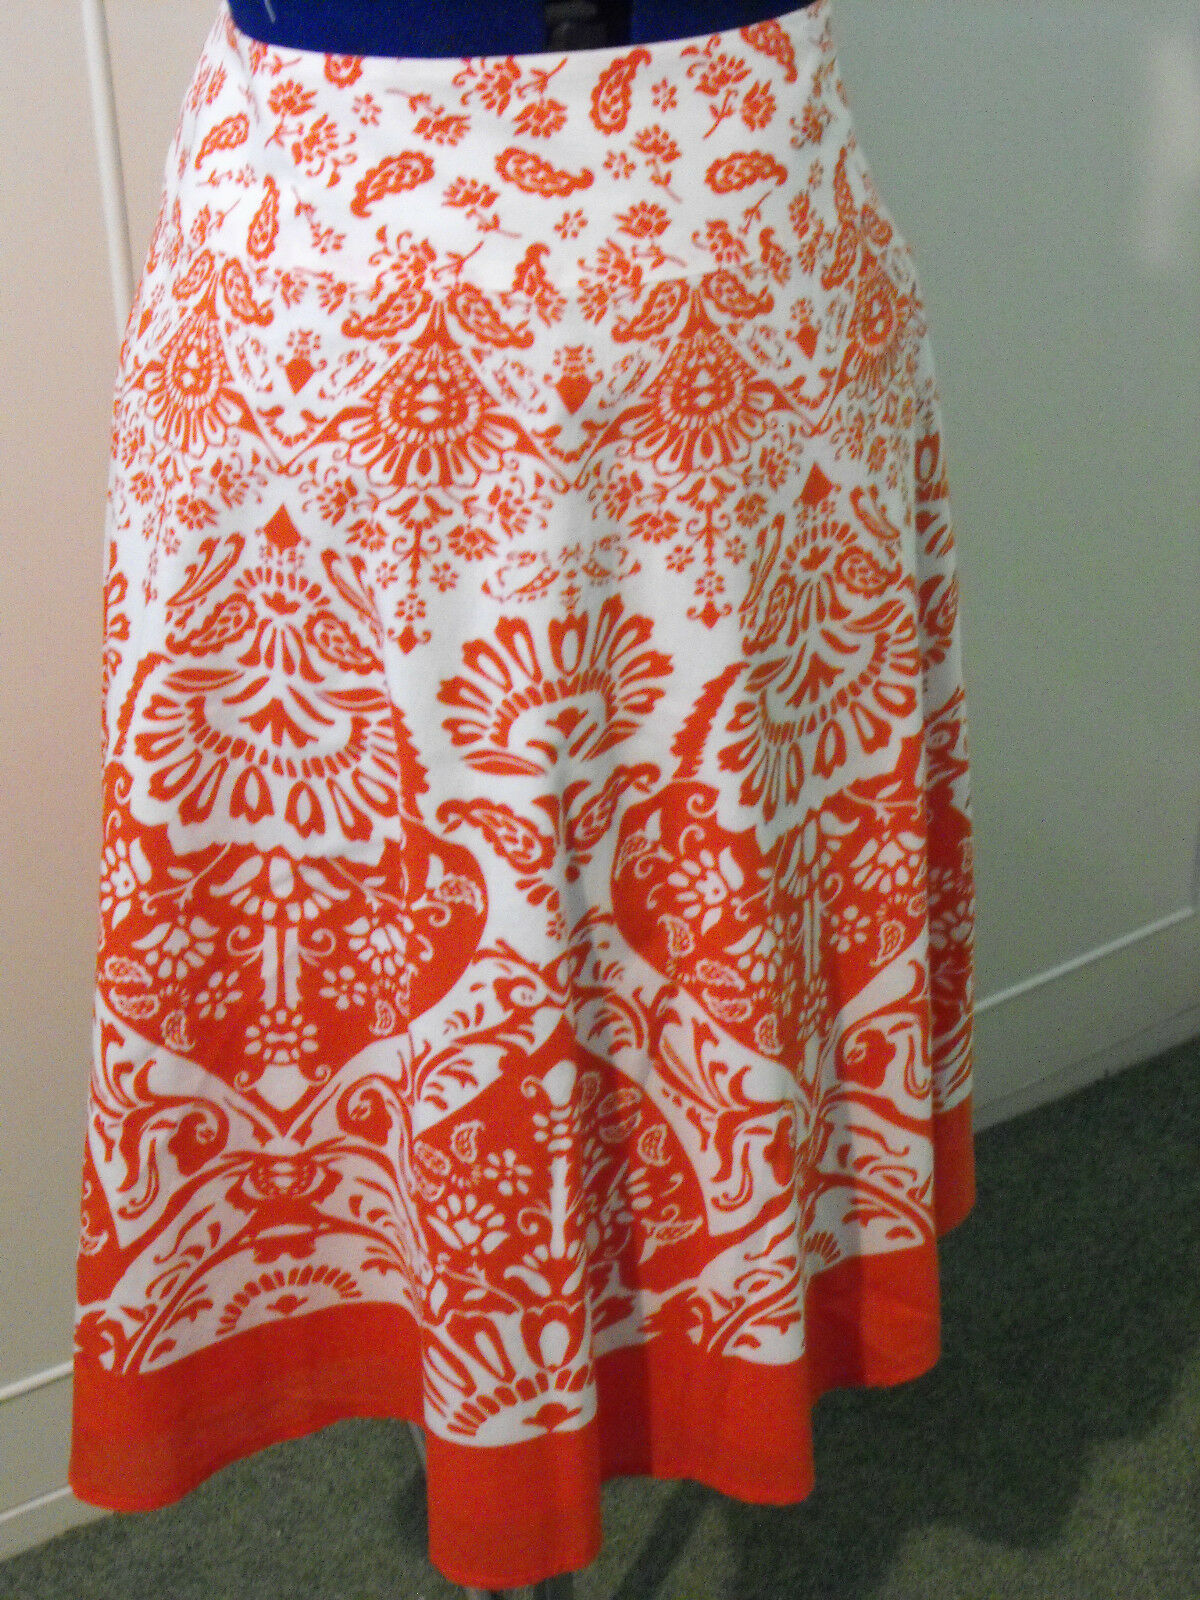 TALBOTS orange AND WHITE COTTON FLARED SKIRT - SIZE 8 (US)